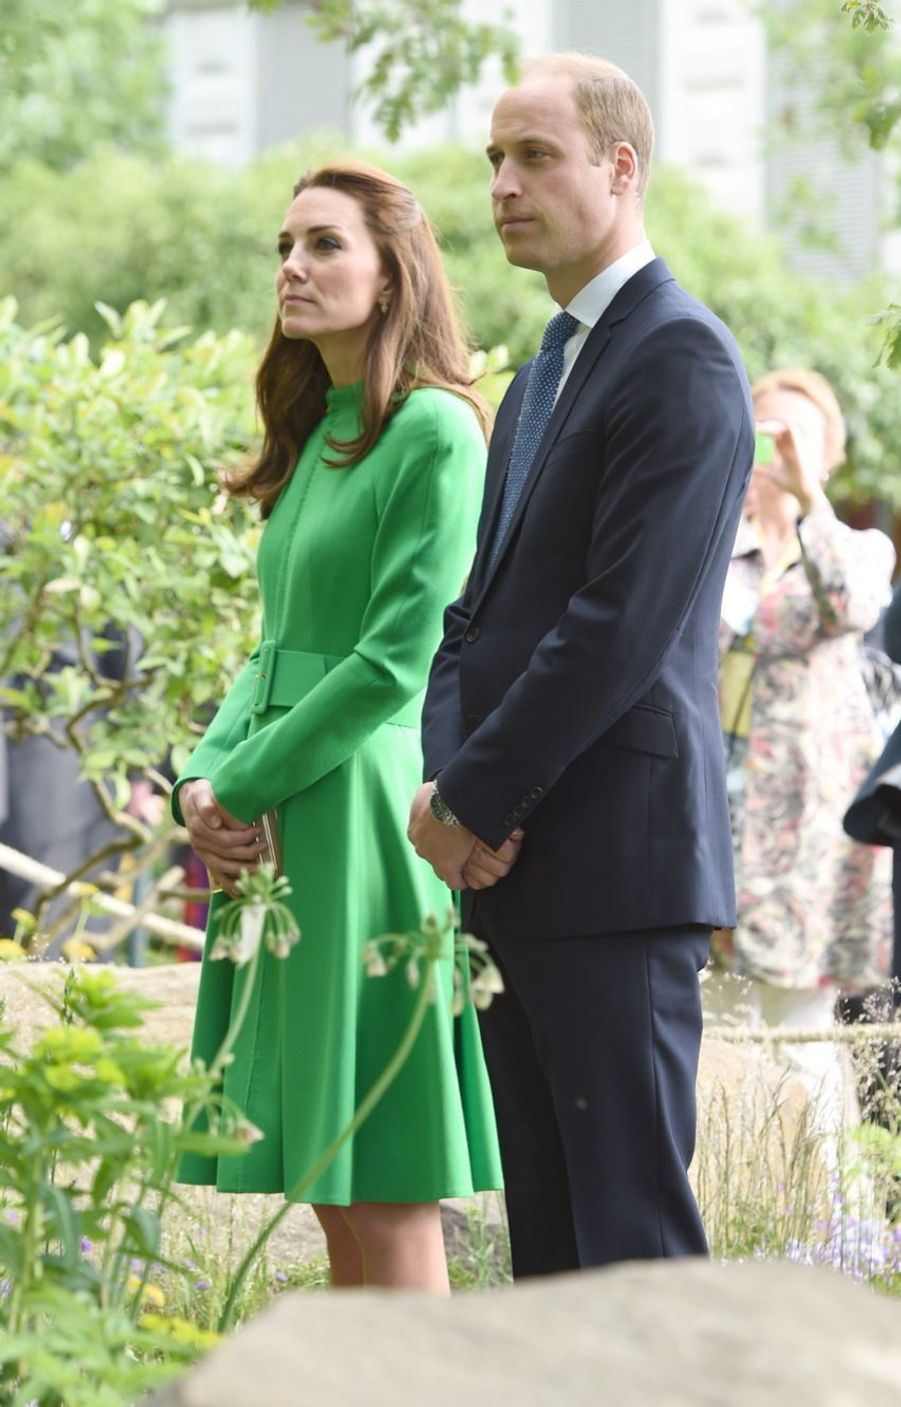 Le prince William et son épouse la duchesse de Cambridge au Chelsea Flower Show.